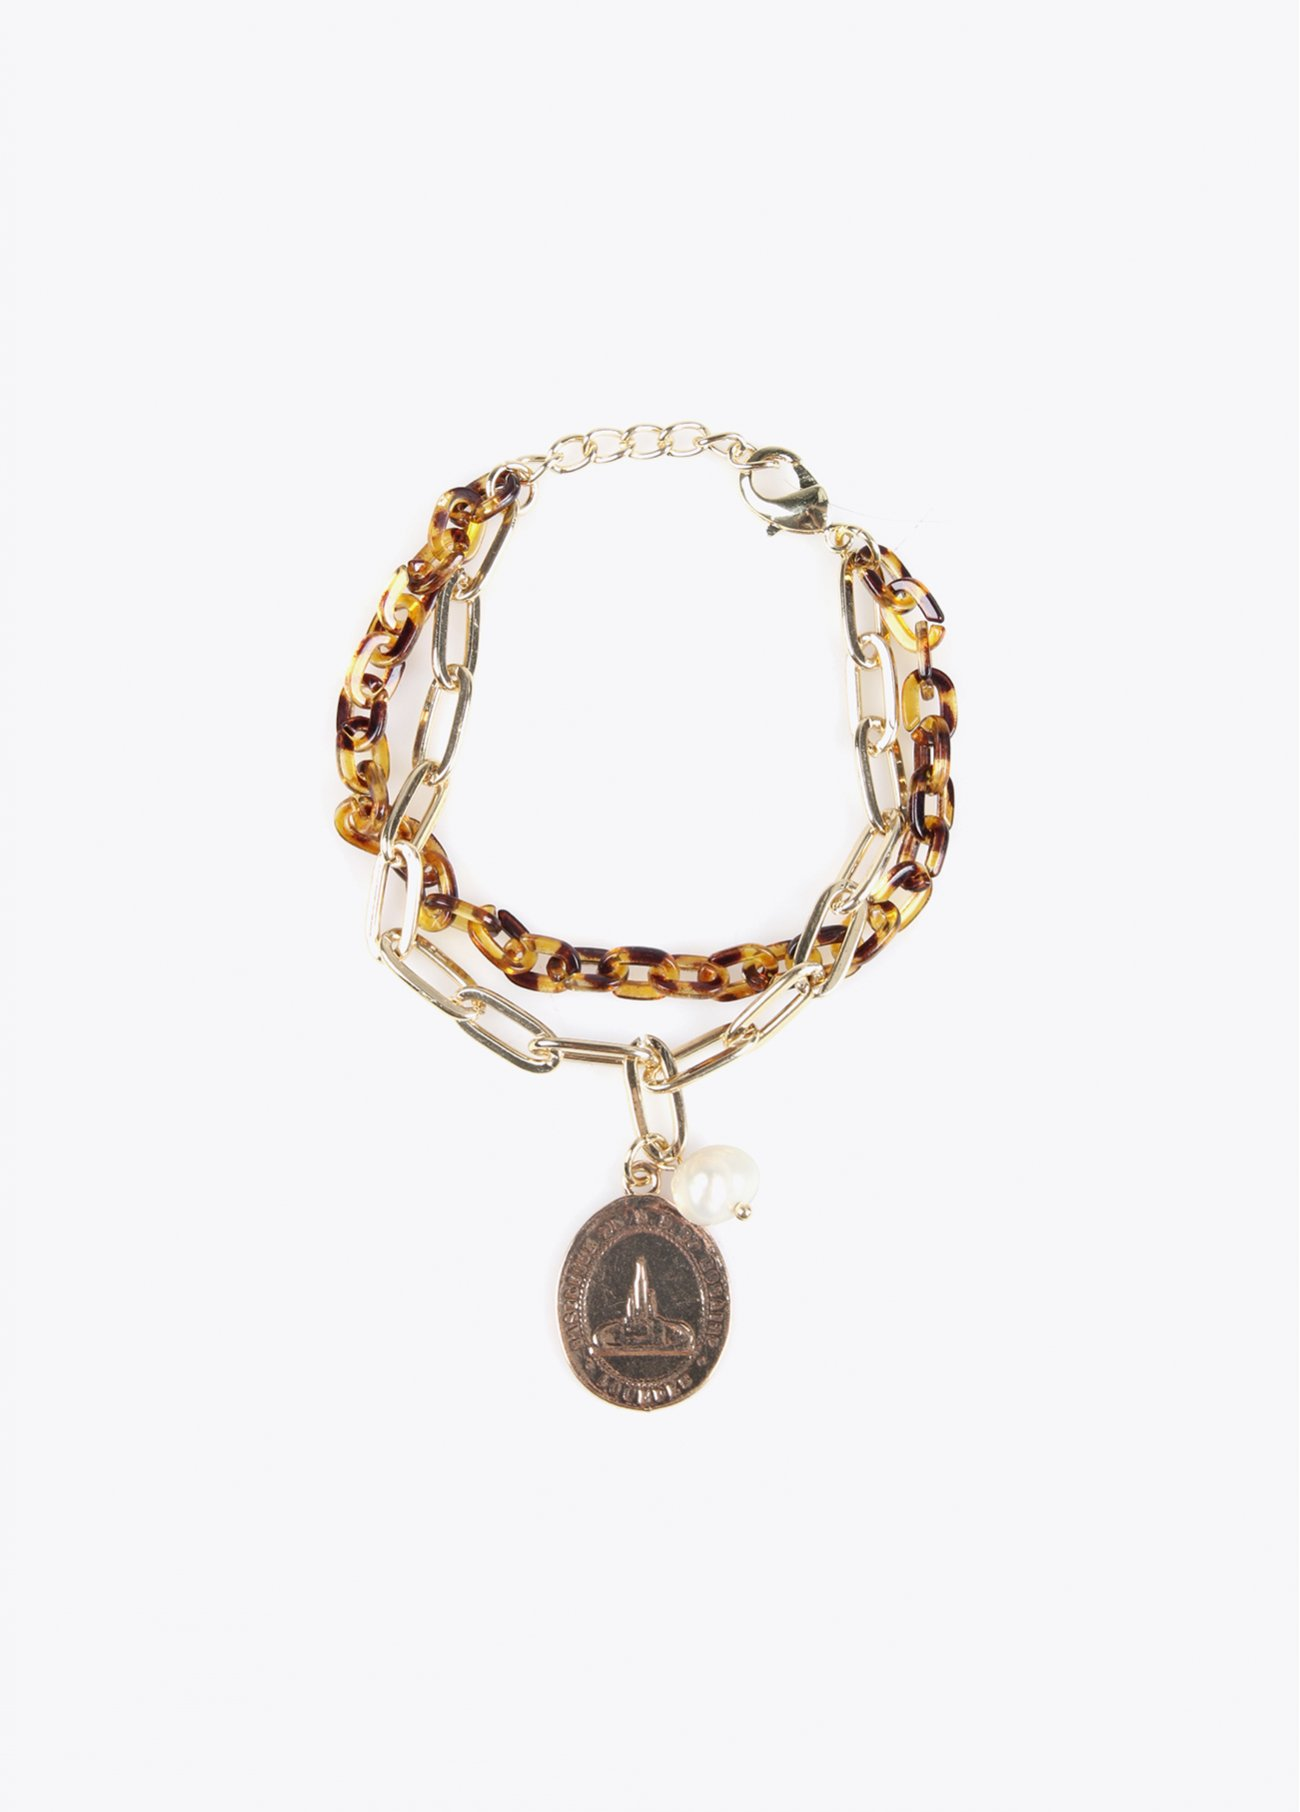 Chain bracelet with resin and coin penda